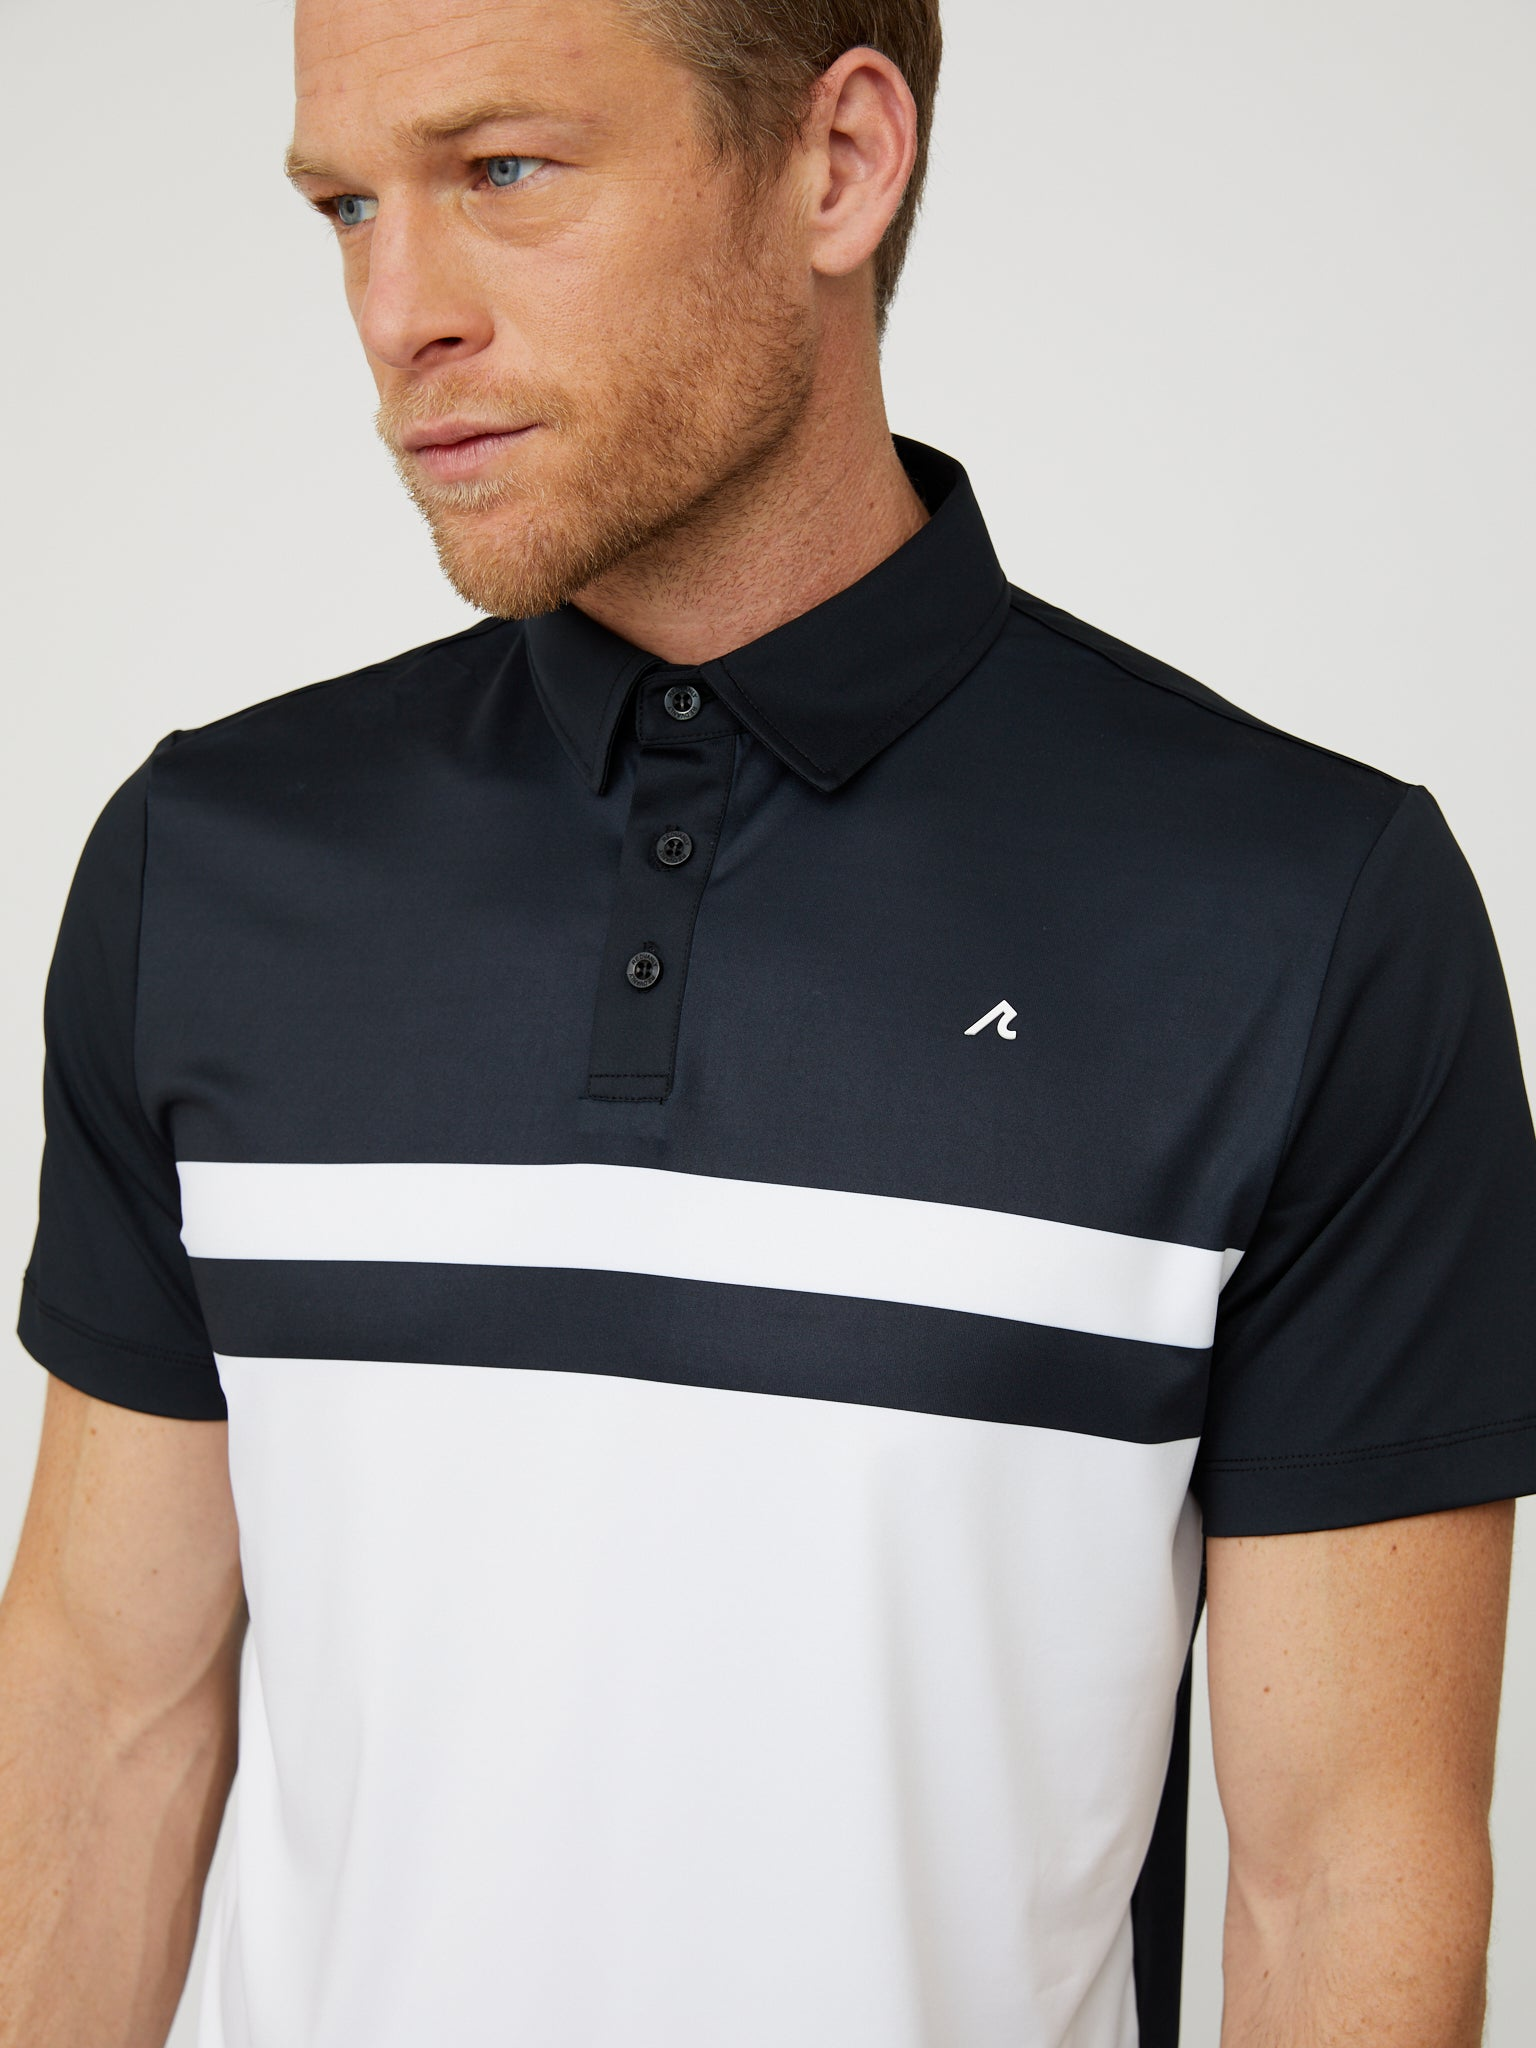 Danvers Polo in Black/White